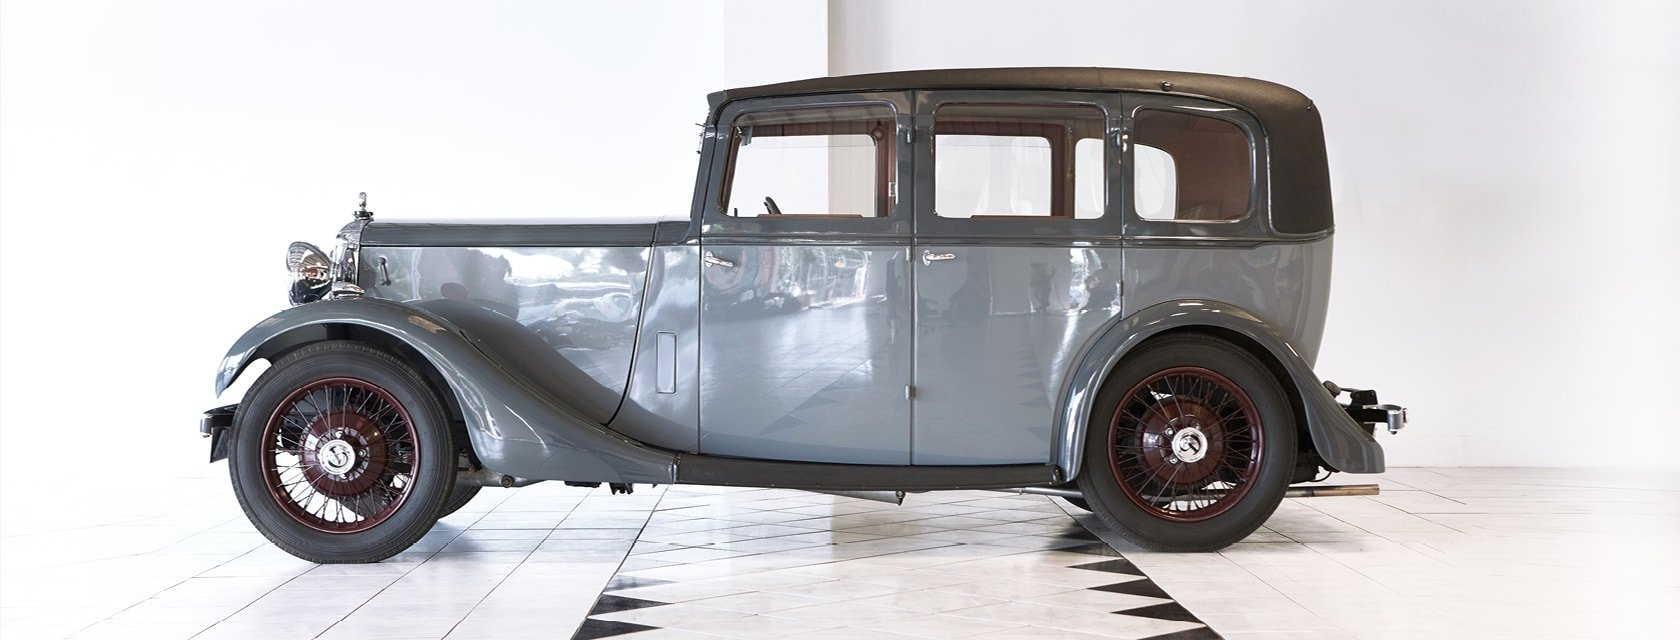 1934 Daimler 15 Saloon Mulliner Body For Sale (picture 4 of 10)